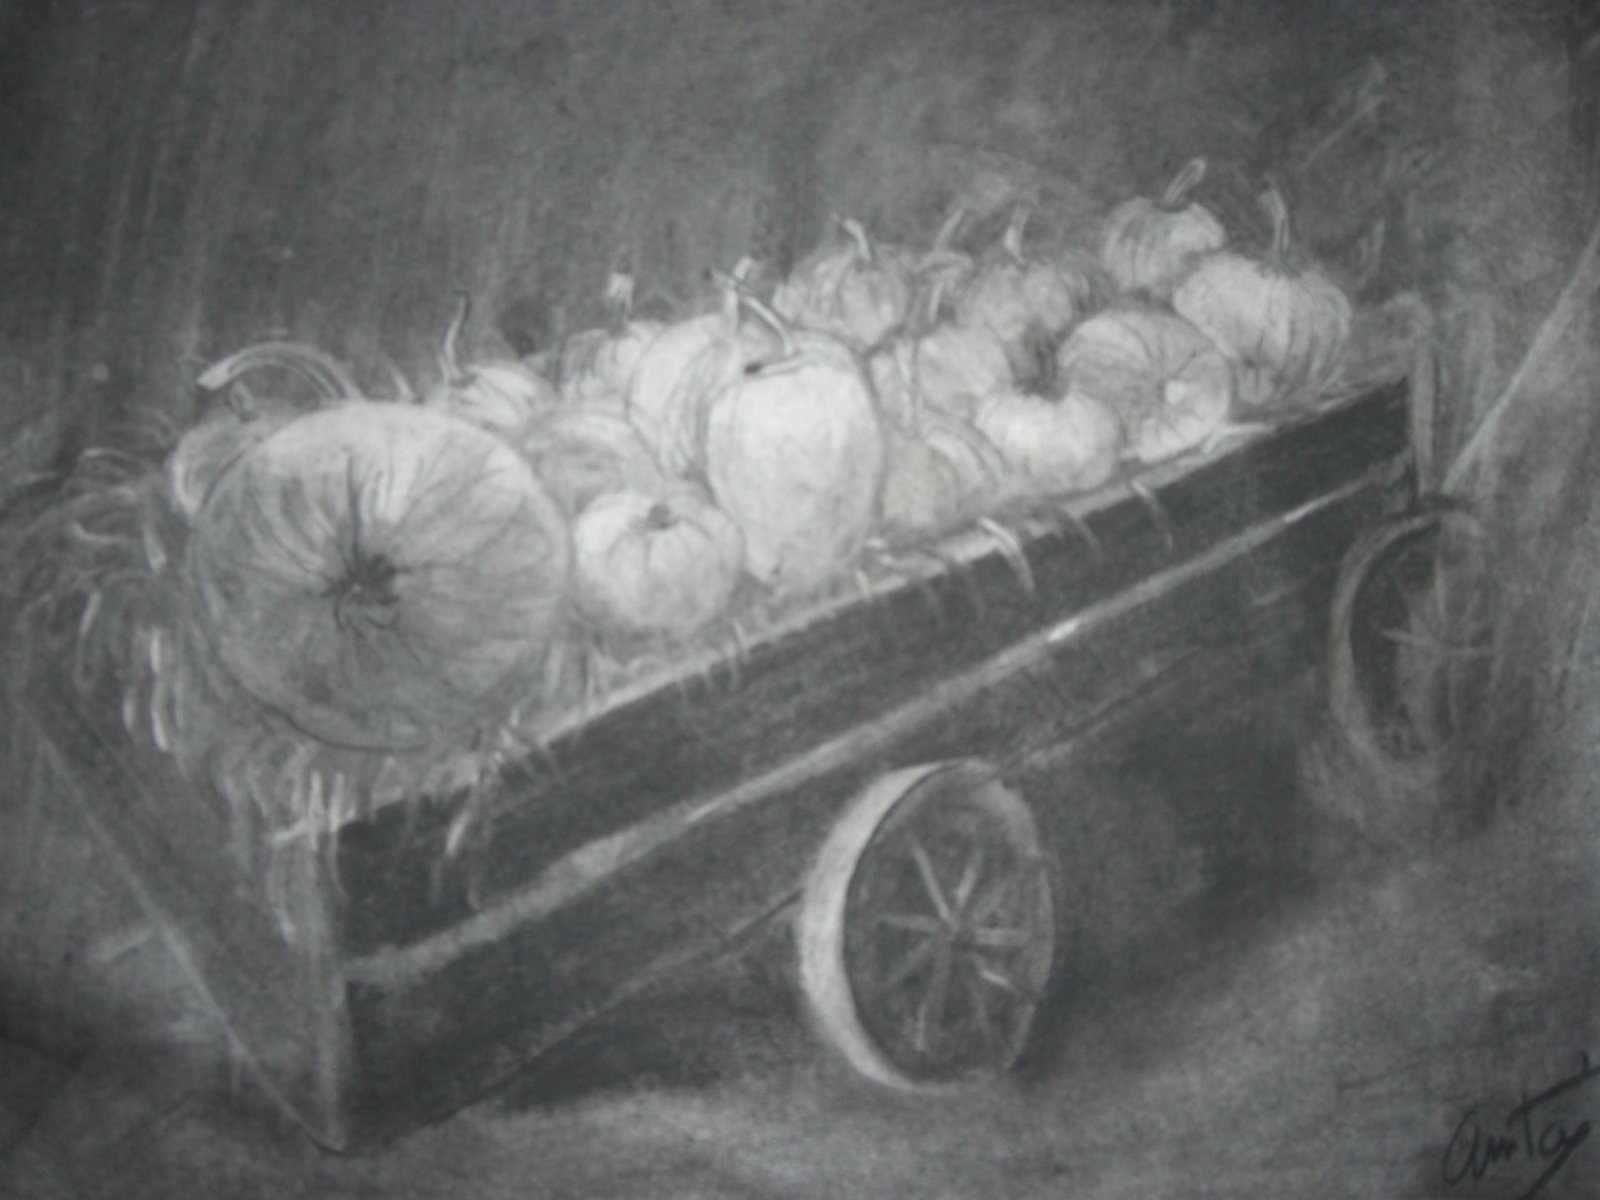 Calabazas.